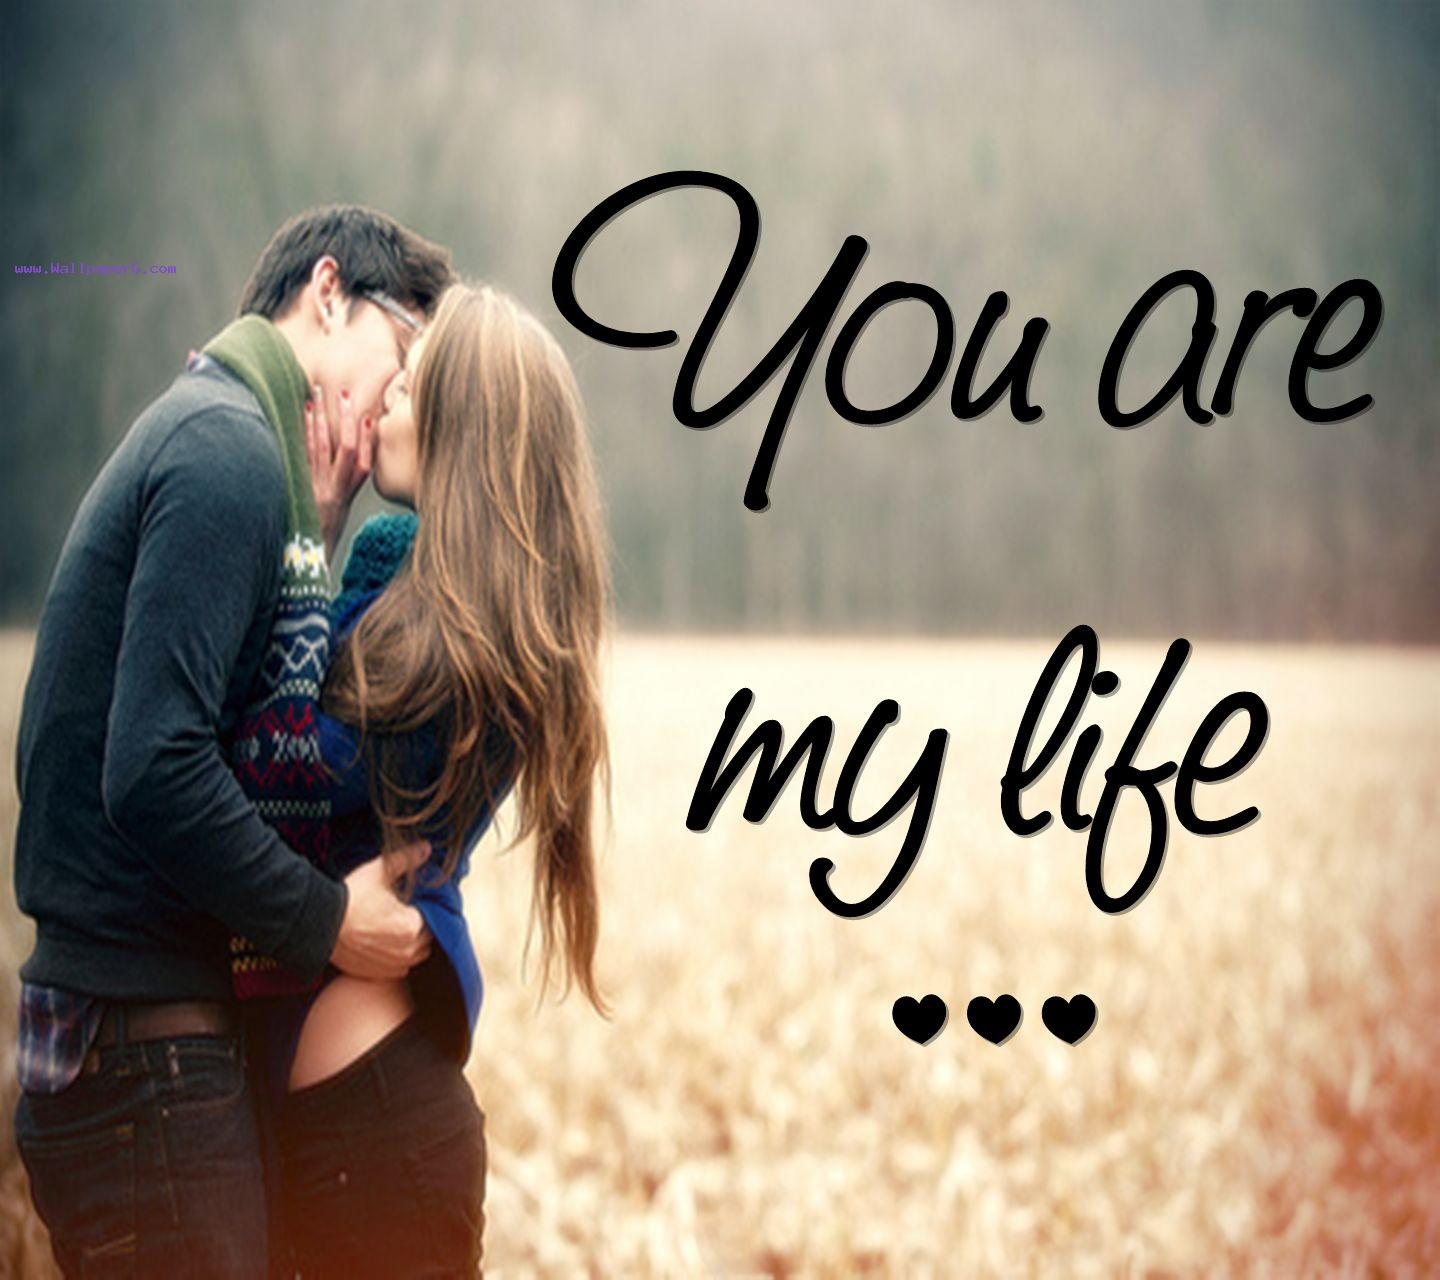 Free Download Download My Life My Love Romantic Wallpapers Mobile Version 1440x1280 For Your Desktop Mobile Tablet Explore 47 Life Wallpaper Free Download Wallpaper About Love And Life Life